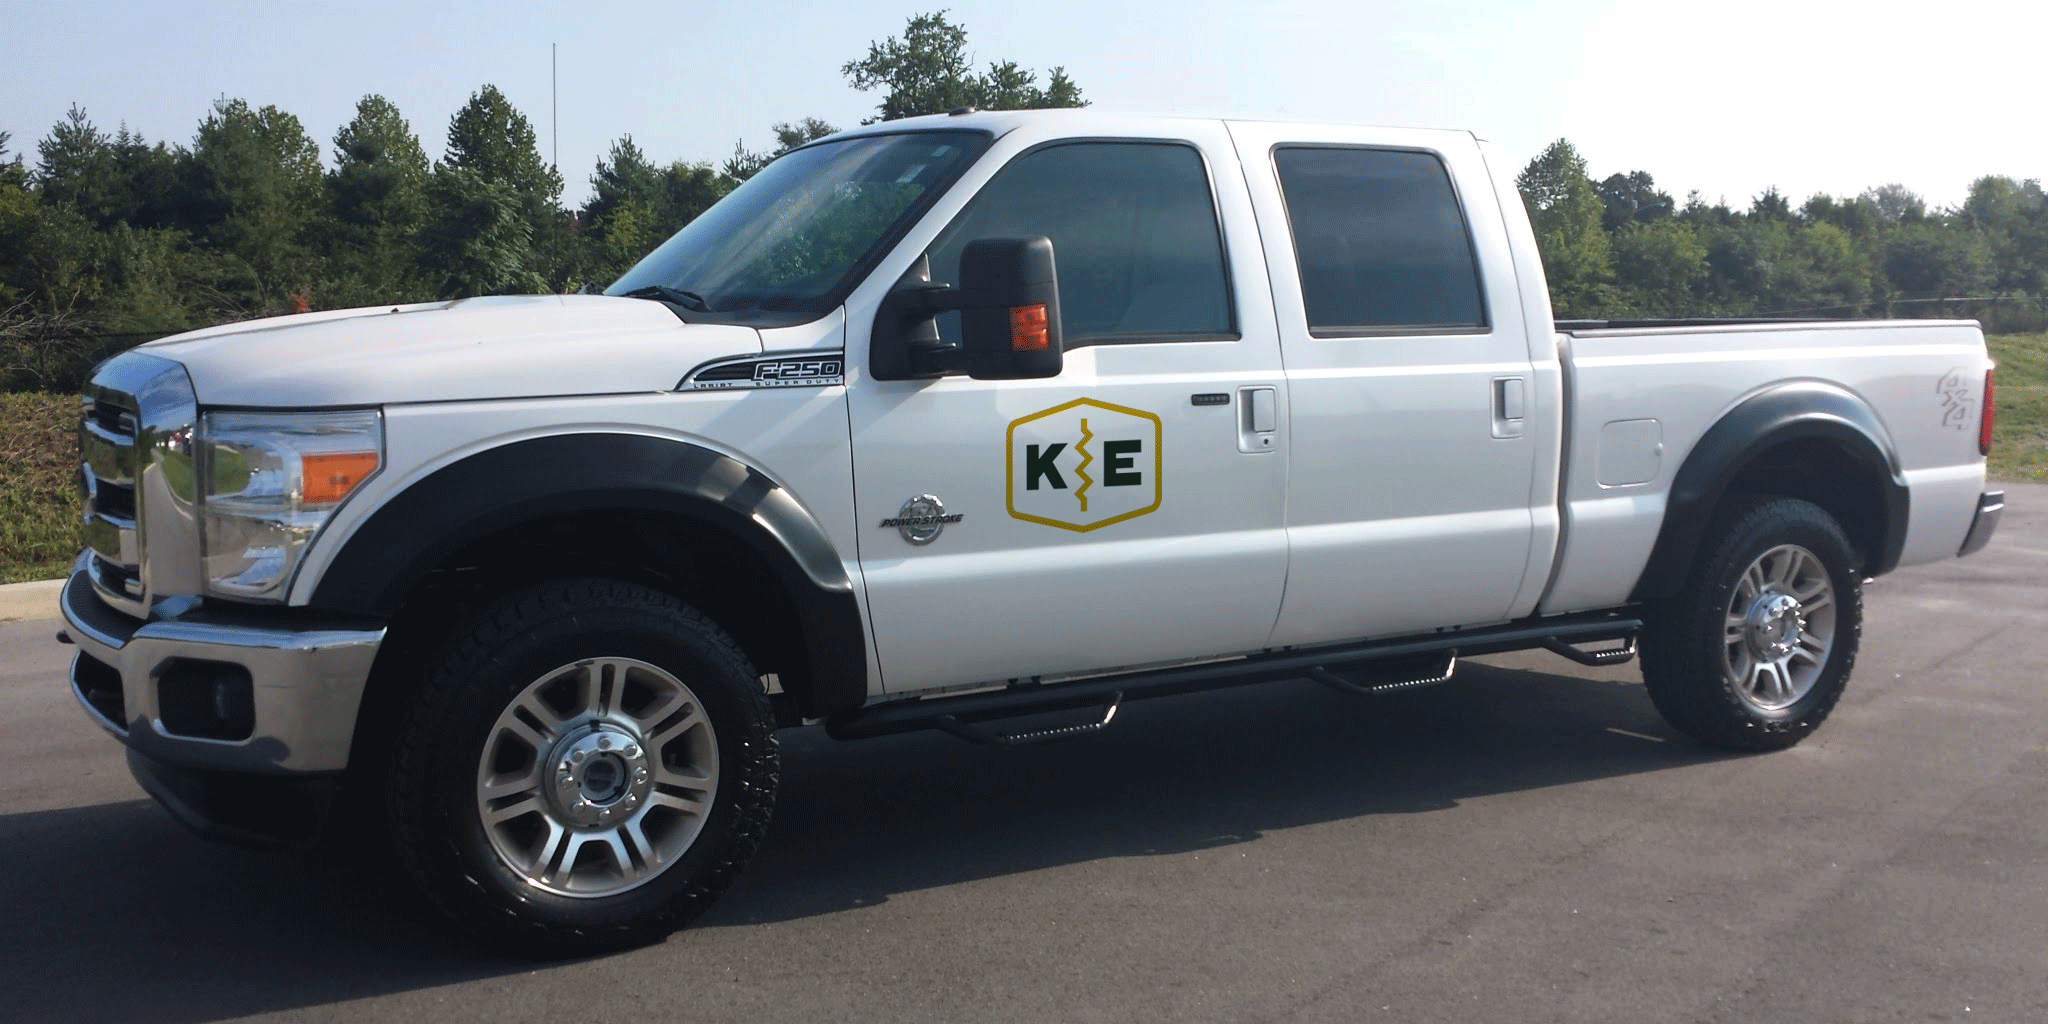 retro badge logo design for kotman electric on white pickup truck